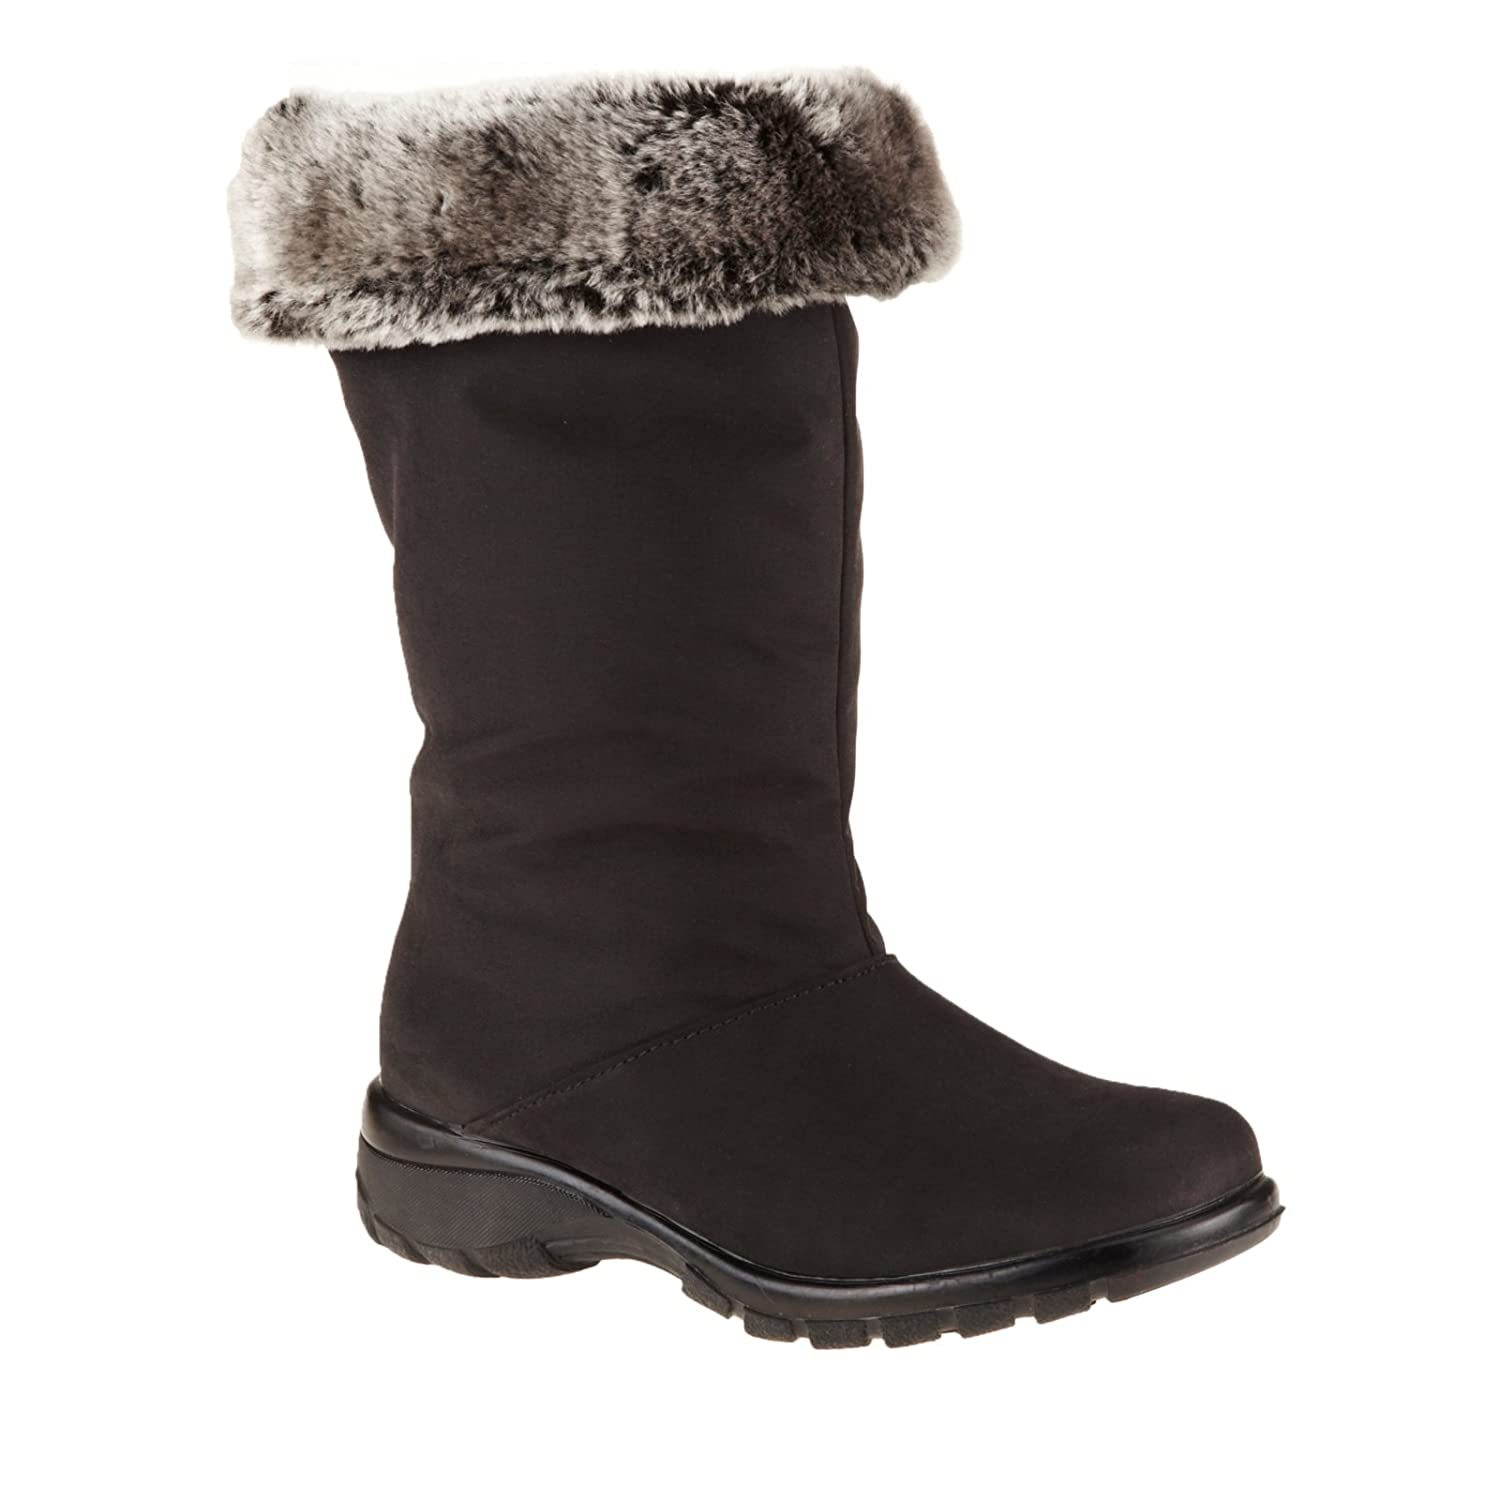 Toe Warmers Women Boots Janet B00476V0Y8 6 W|Black